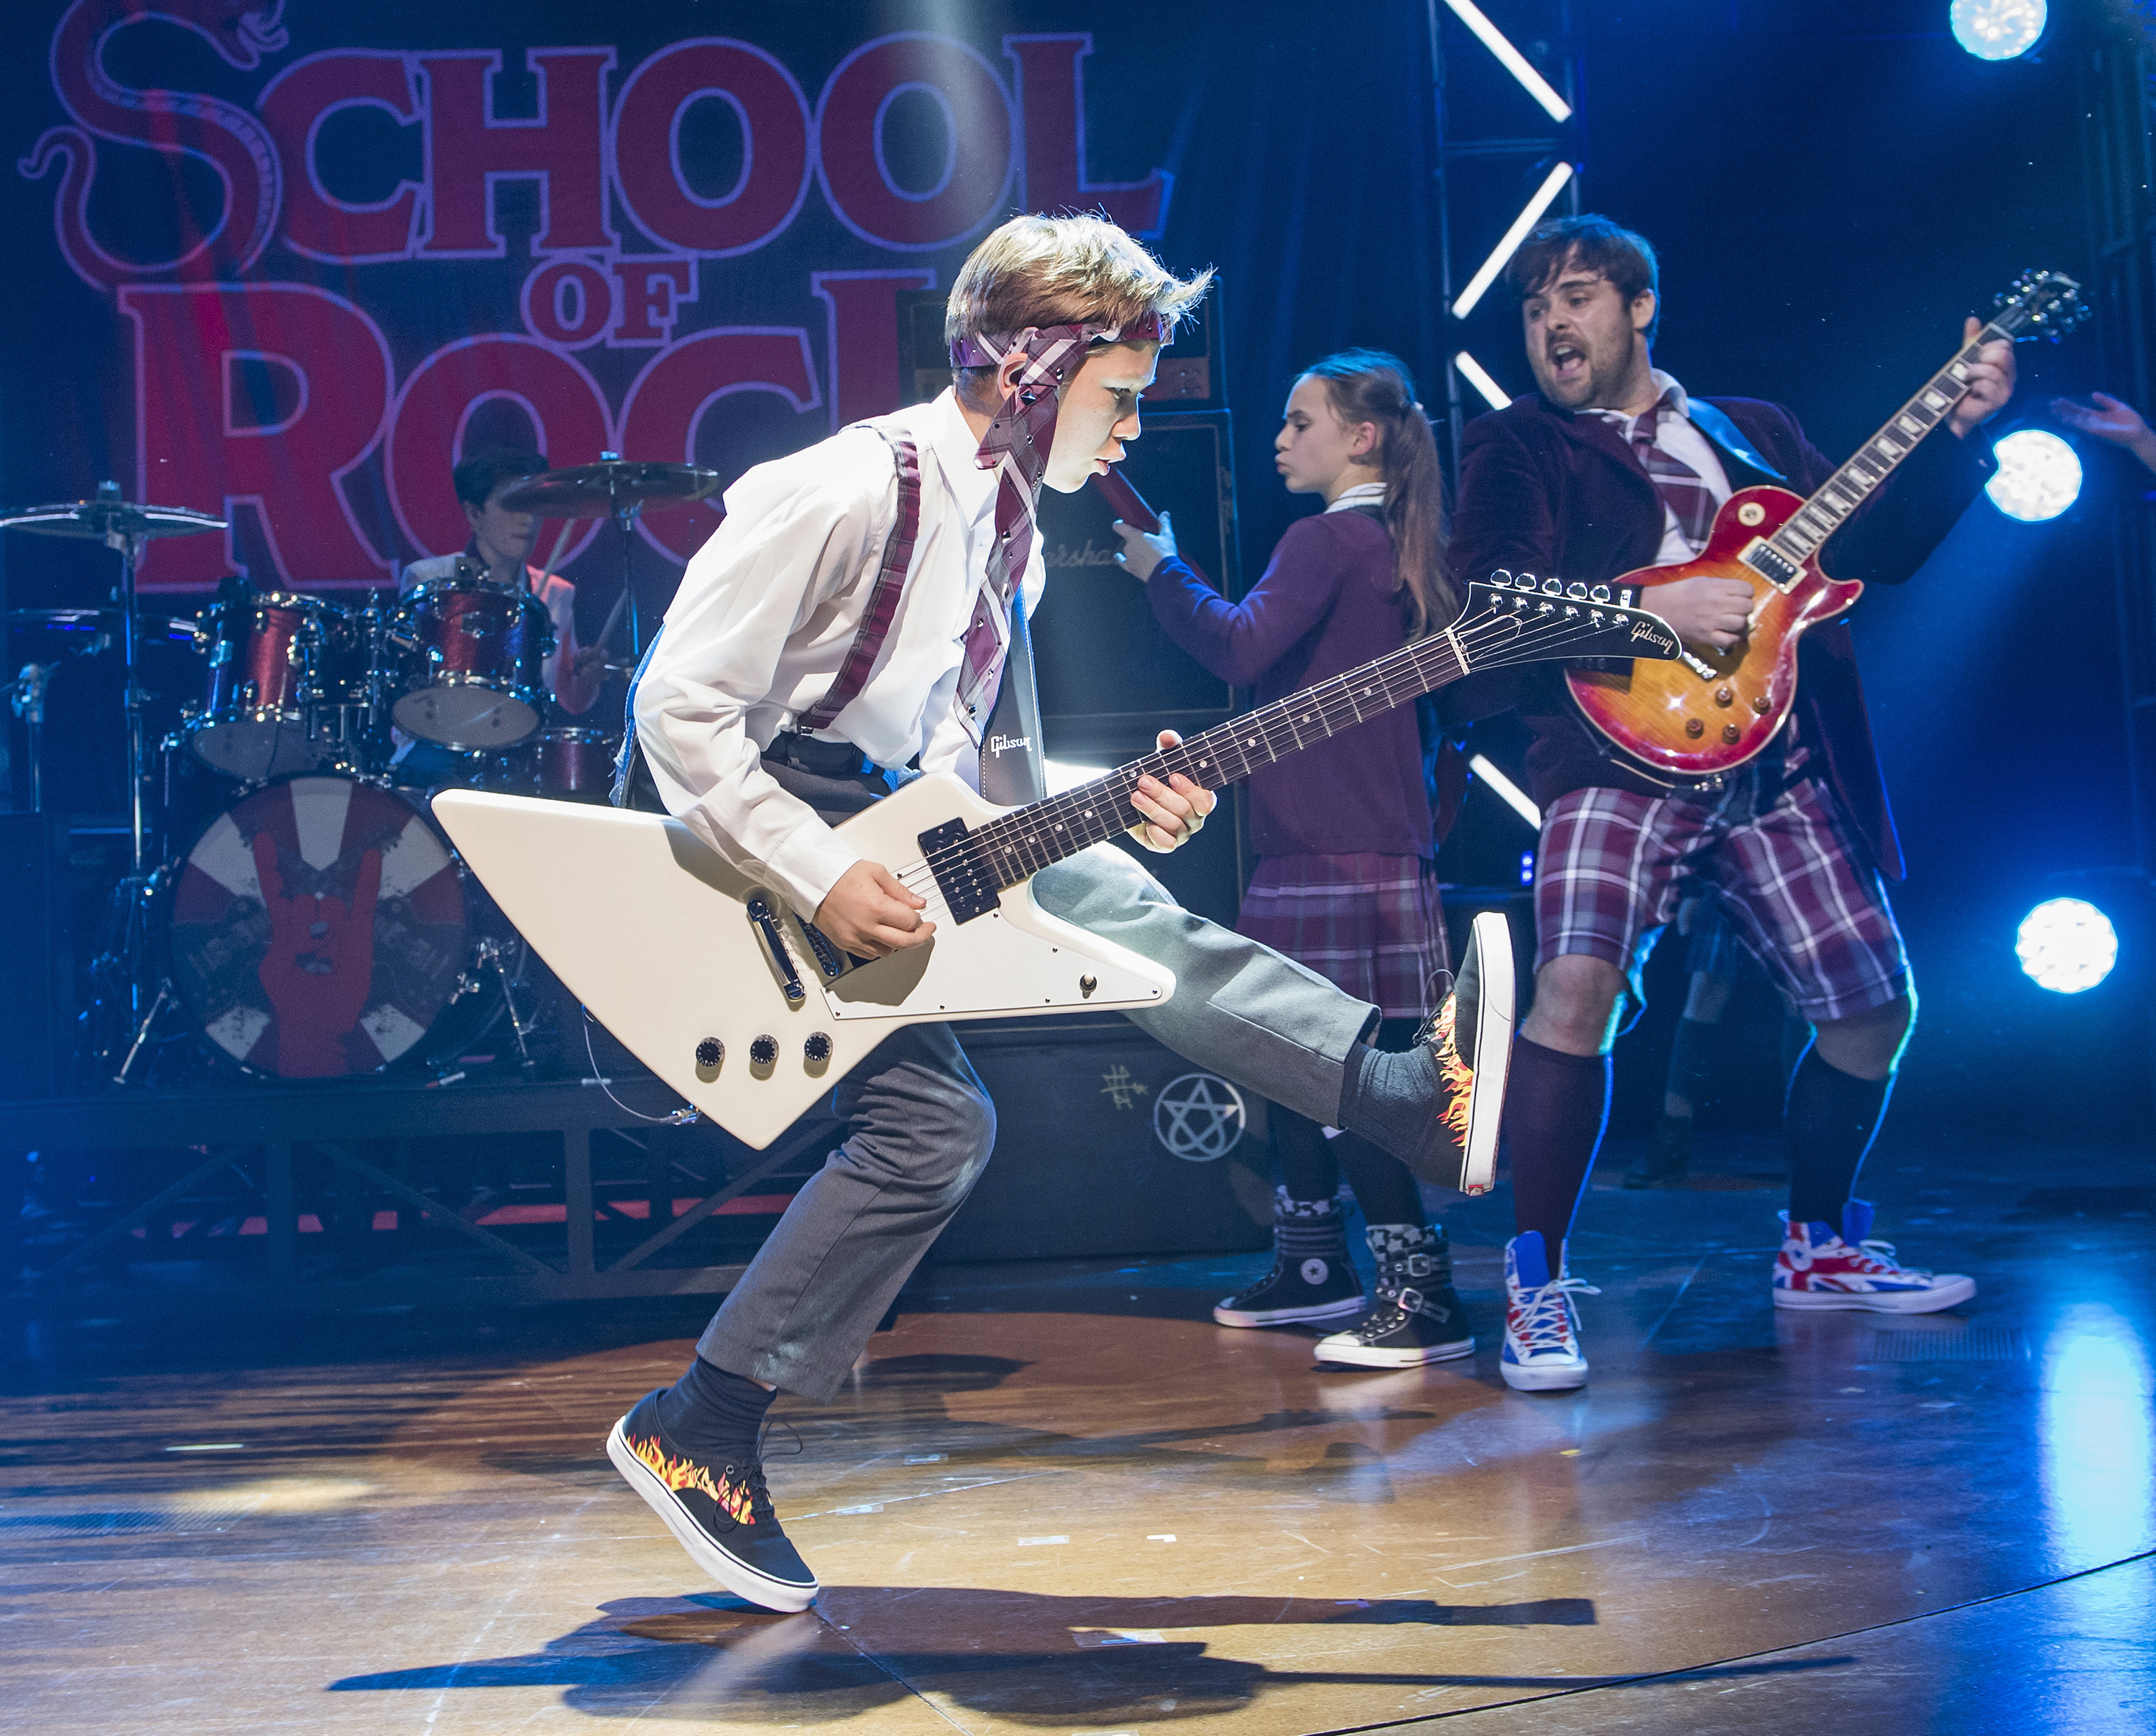 Review: School of Rock - The Musical